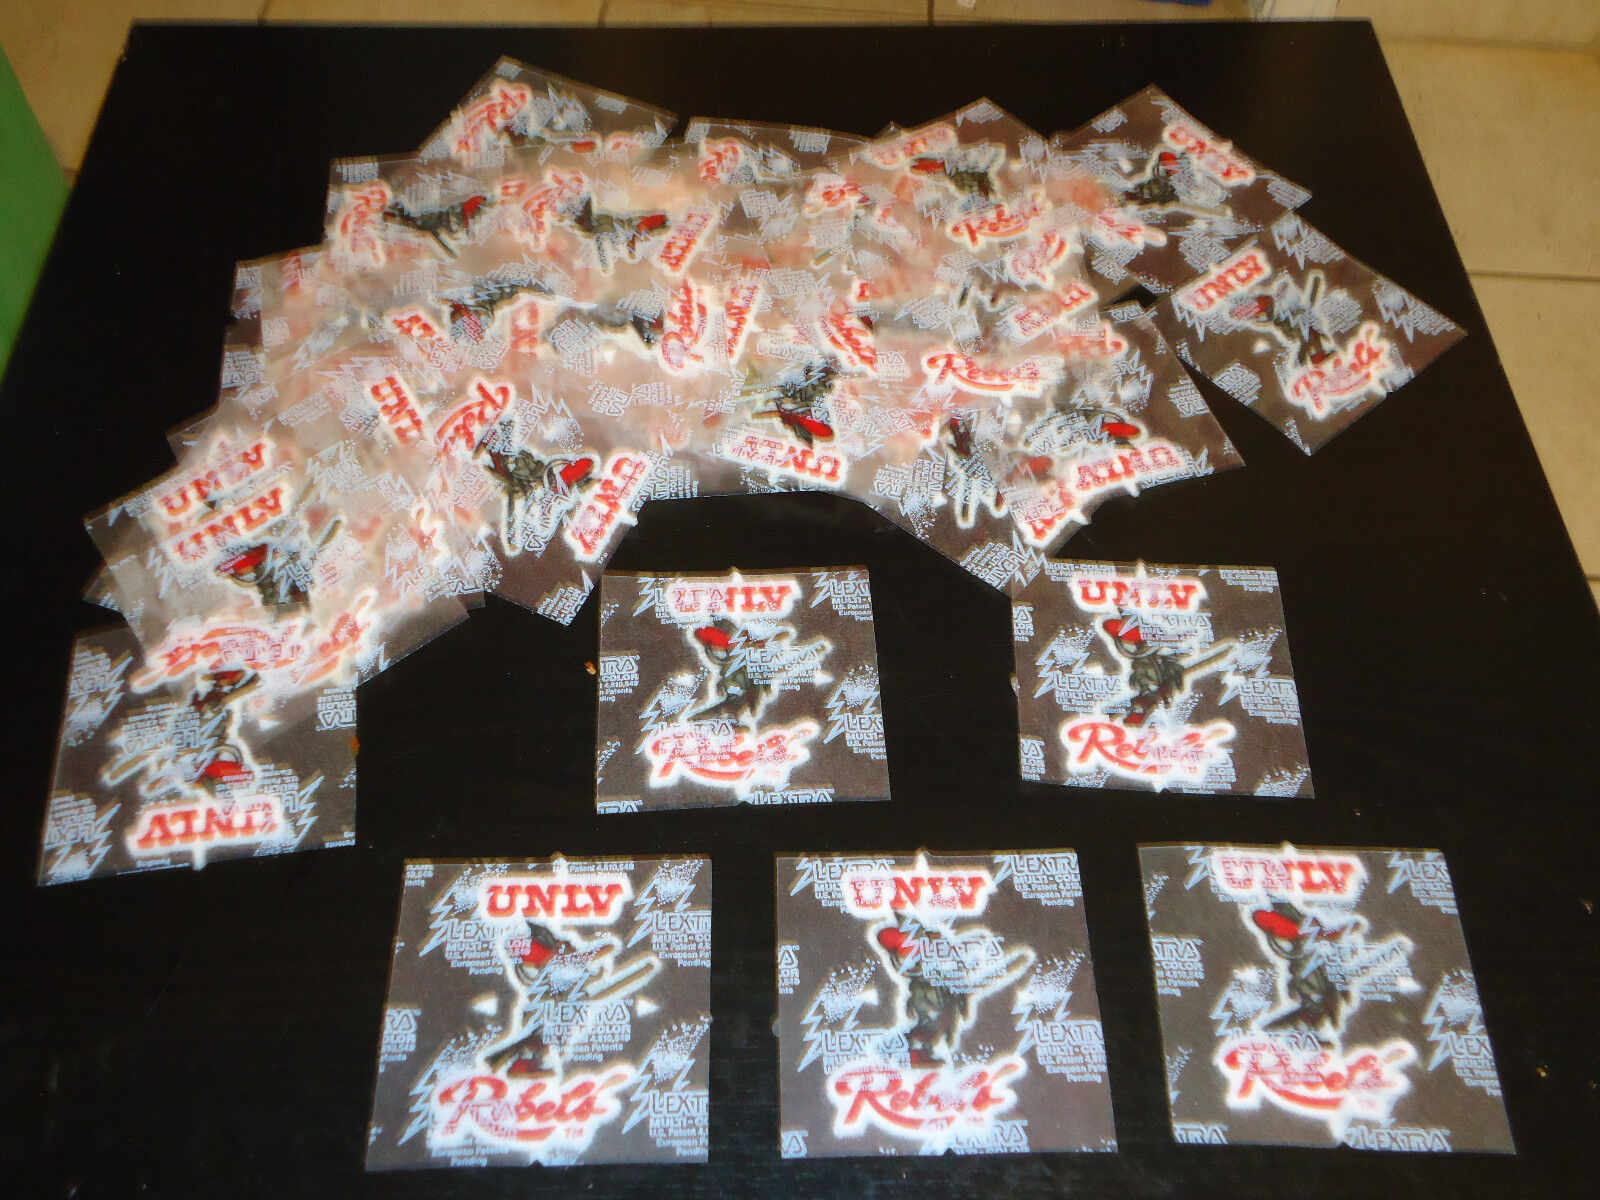 "UNLV Rebels Team Iron On Patches Lot of 50 Brand New 3"" x 2"" Без бренда"